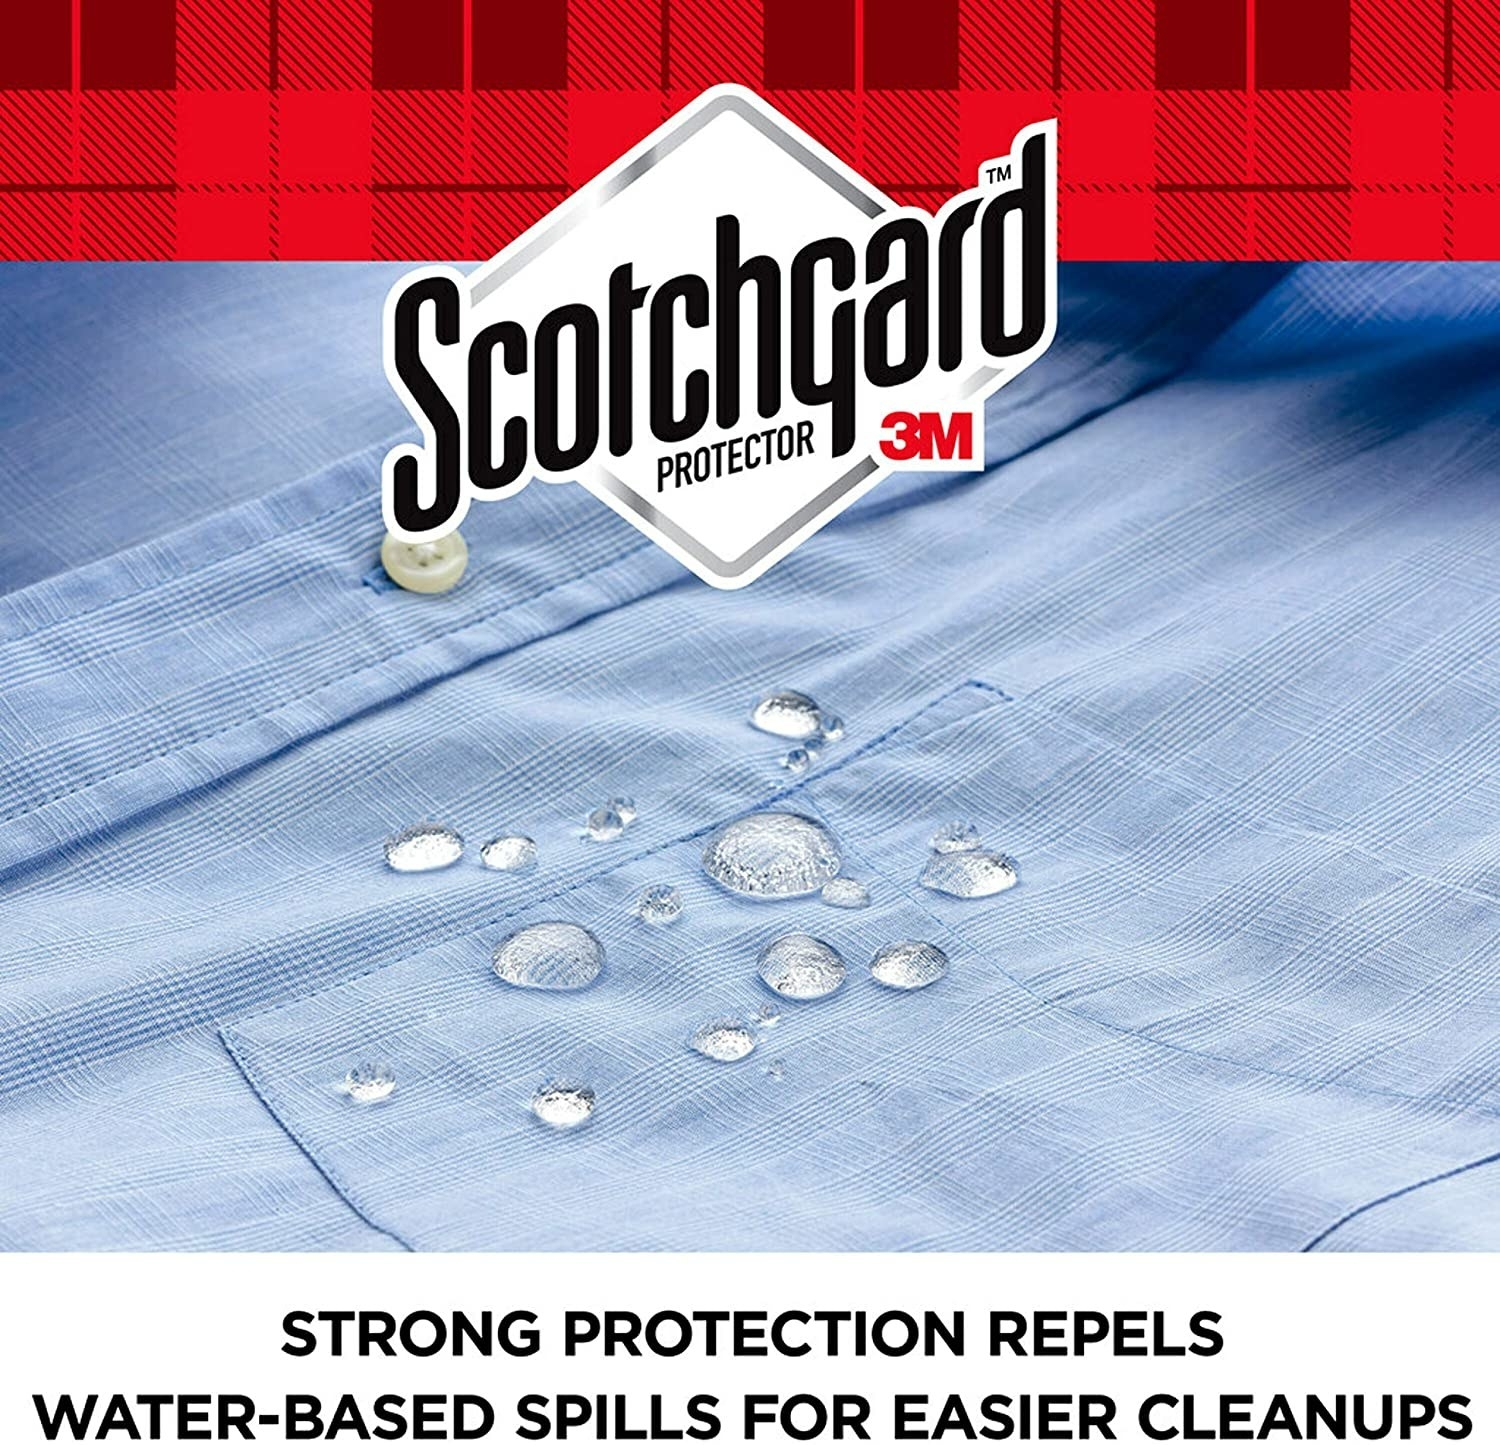 The product on a shirt showing it's repelling water